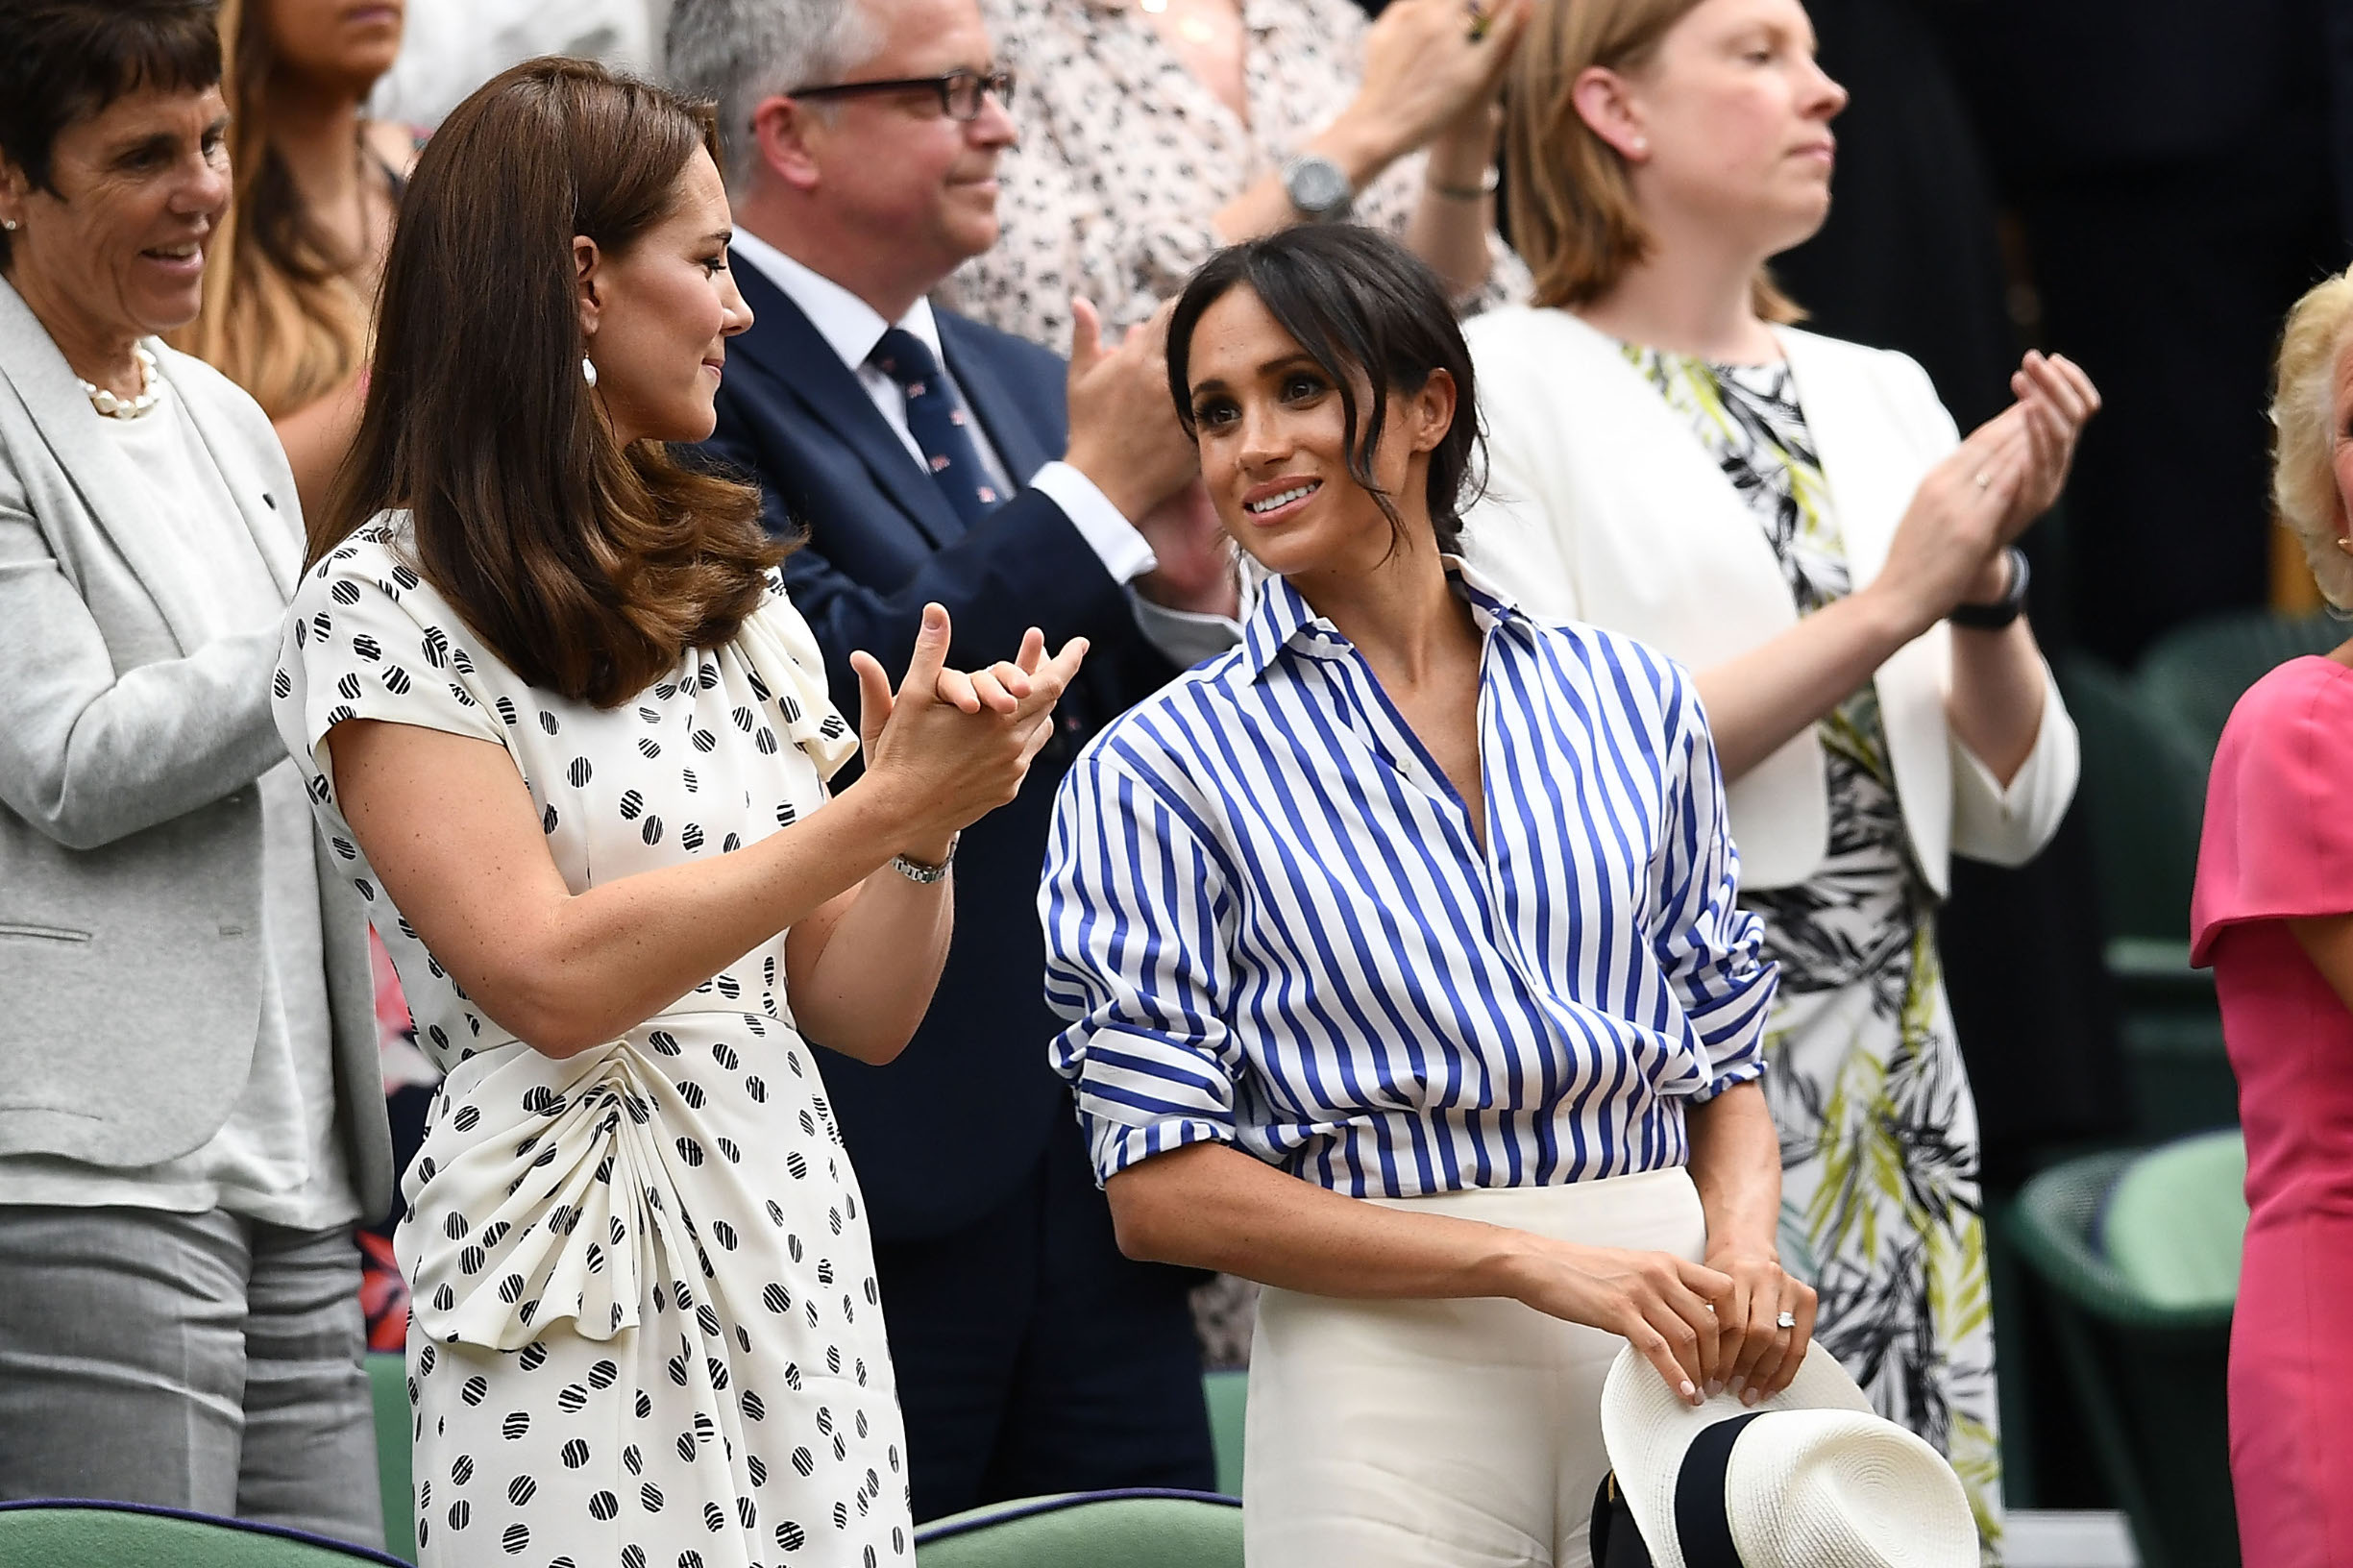 LONDON, ENGLAND - JULY 14:  Catherine, Duchess of Cambridge and Meghan, Duchess of Sussex react after Novak Djokovic of Serbia beat Rafael Nadal of Spain in the Men's Singles semi-final on day twelve of the Wimbledon Lawn Tennis Championships at All England Lawn Tennis and Croquet Club on July 14, 2018 in London, England.  (Photo by Clive Mason/Getty Images)